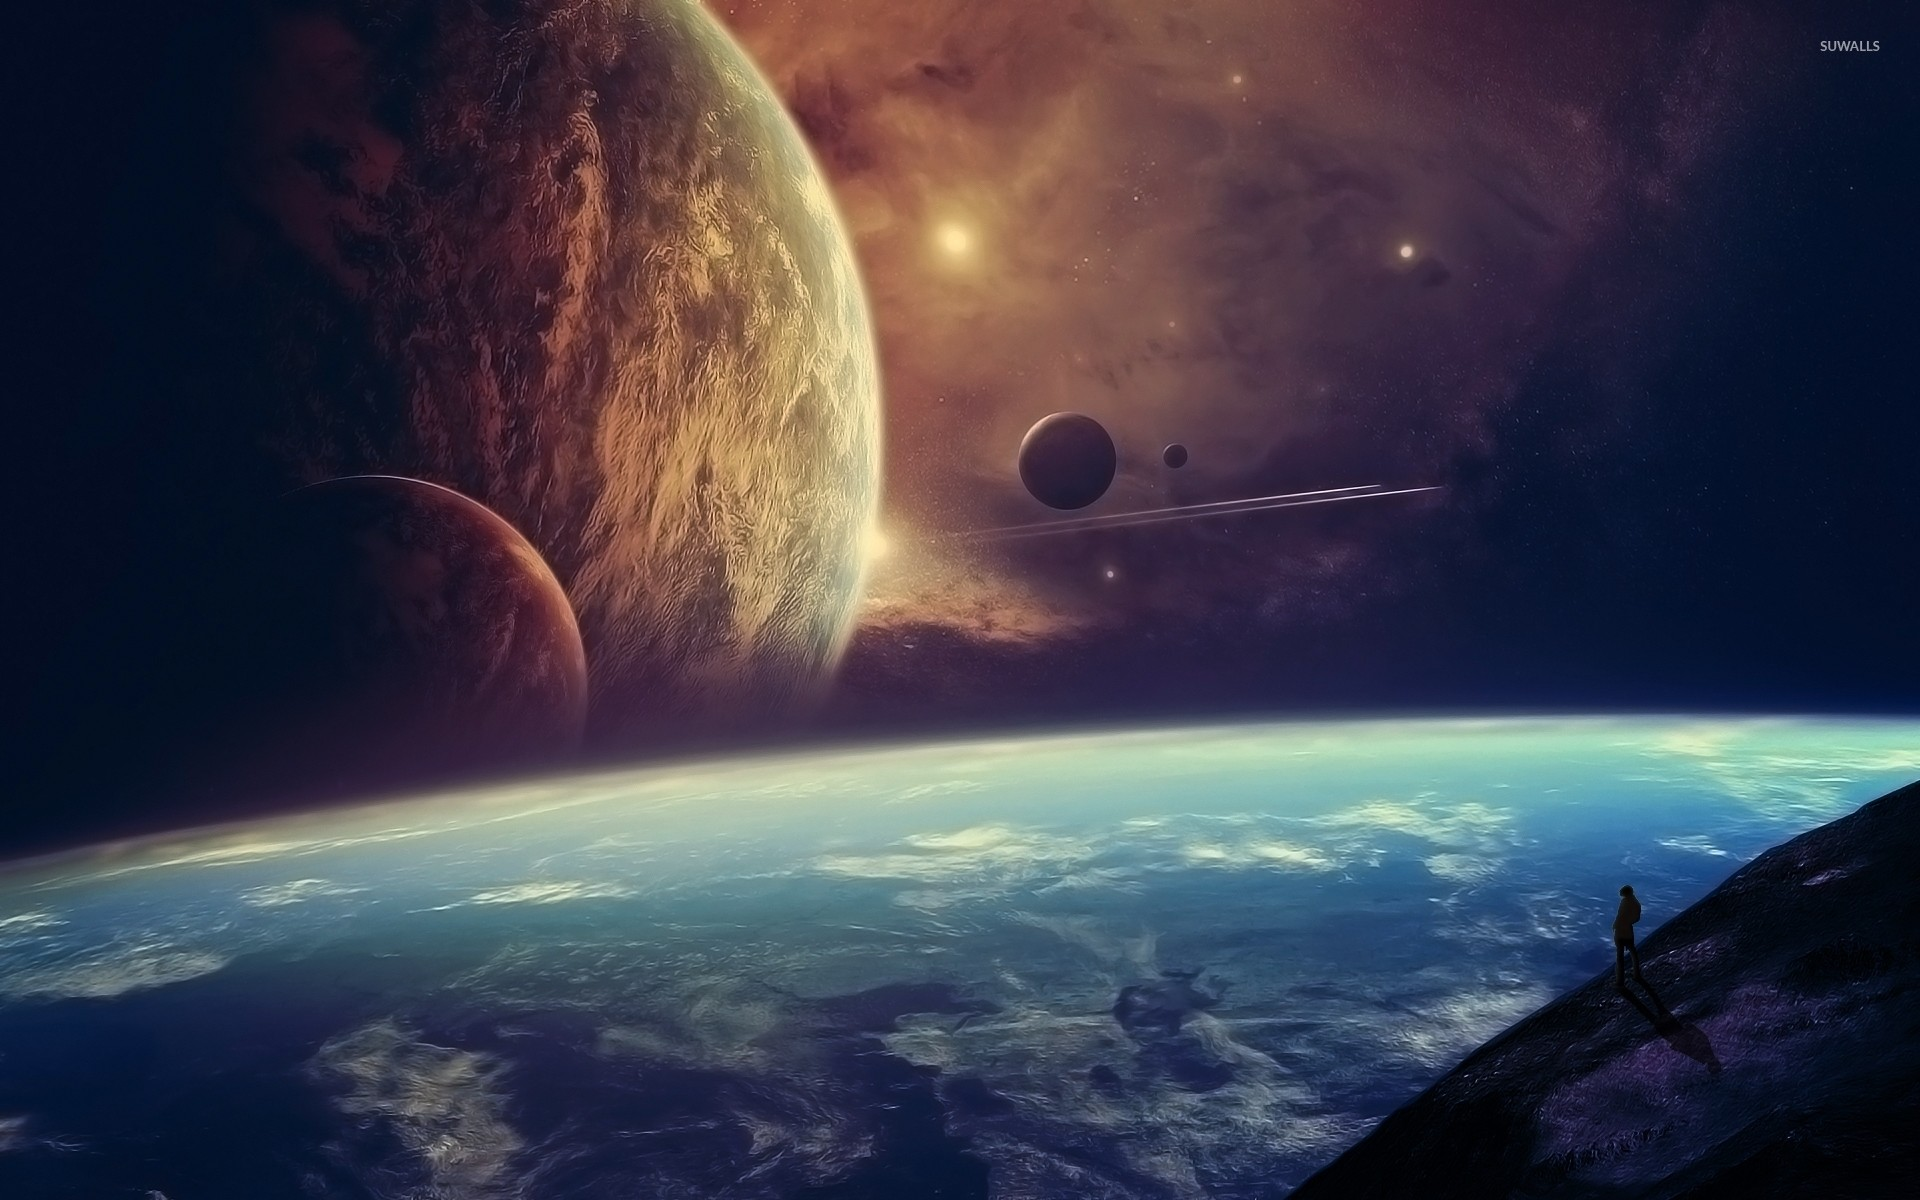 Planets in the horizon of a blue planet wallpaper jpg